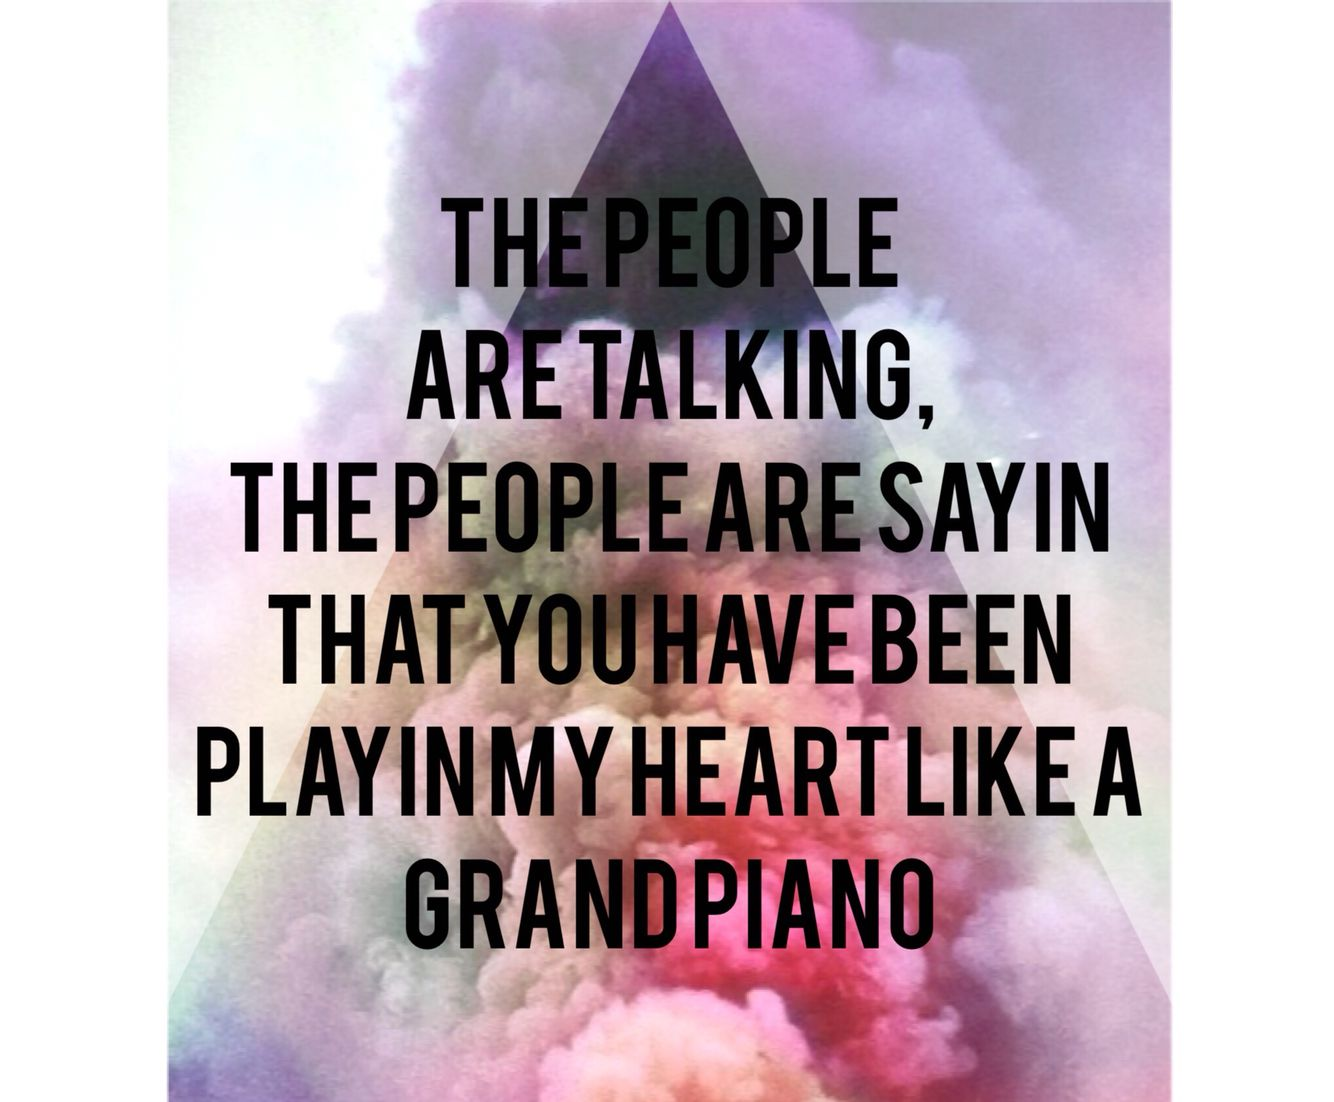 Grand Piano Nicki Manaj I M In The Mood To Make These Types Of Edits So Just Comment Lyrics The Song And Artist And I Cool Lyrics Lyric Quotes Life Quotes